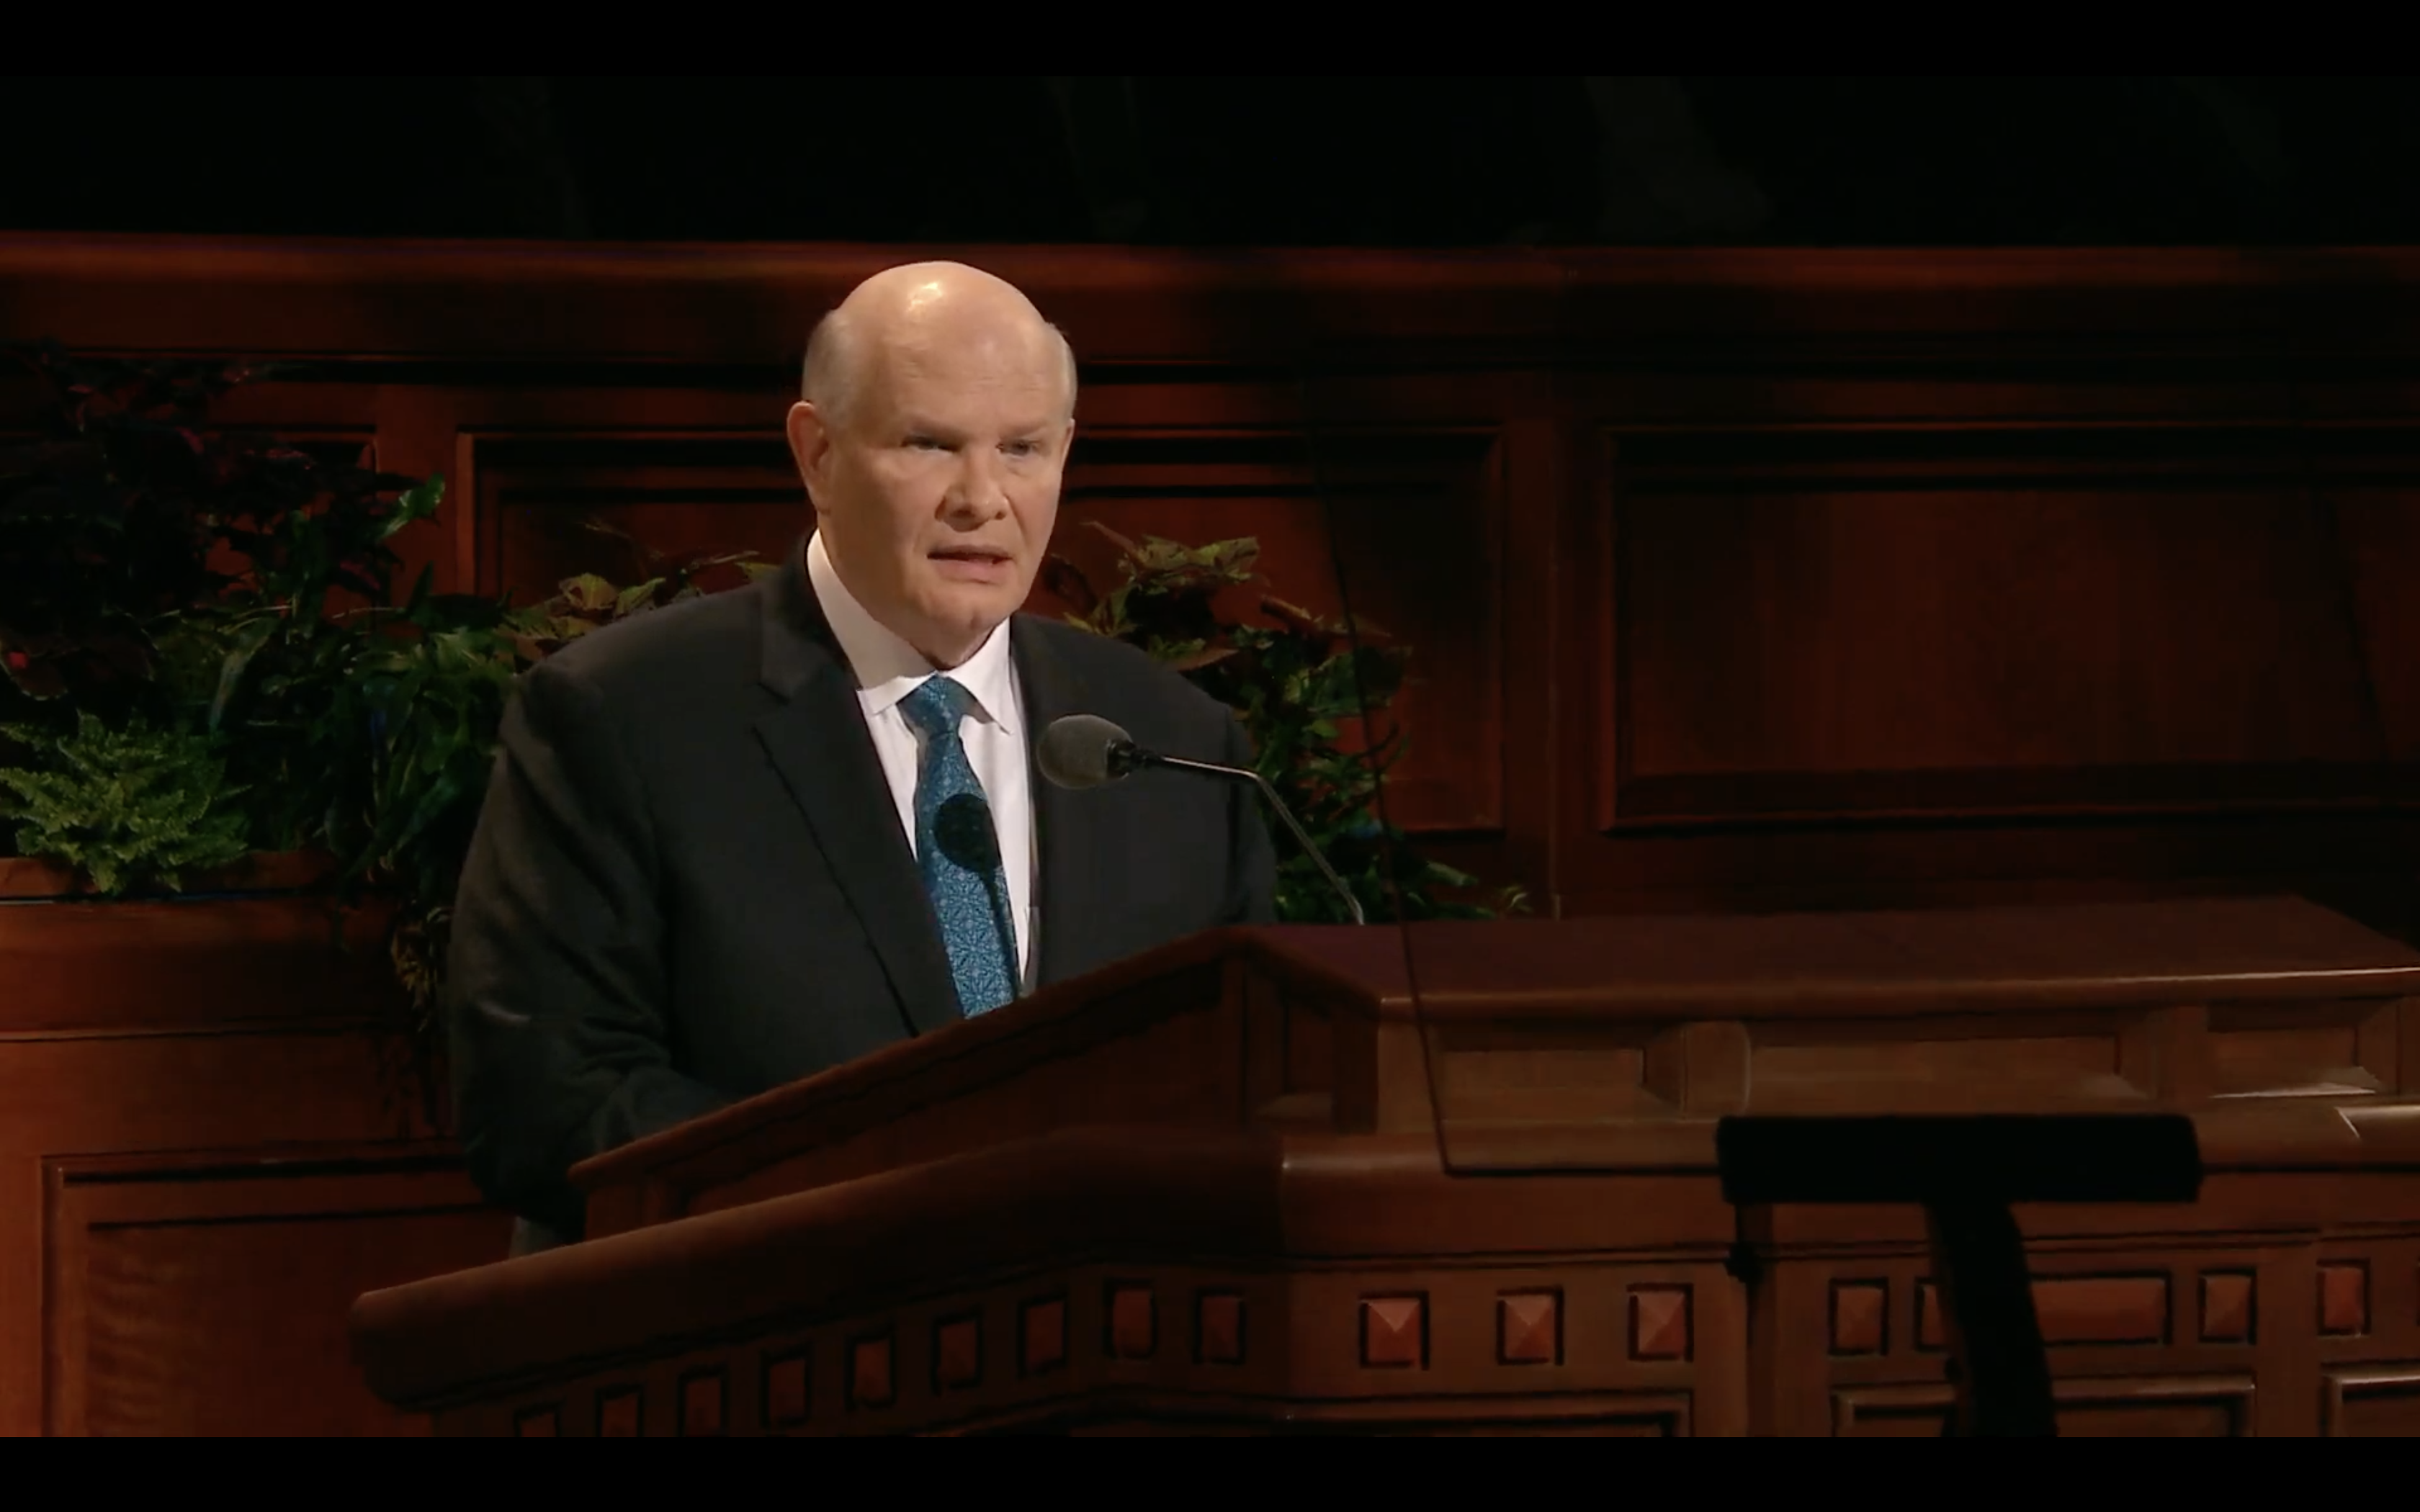 Elder Dale G. Renlund of the Quorum of the Twelve Apostles speaks during the Saturday morning session in the 189th Semiannual General Conference of the Church on Oct. 5, 2019.